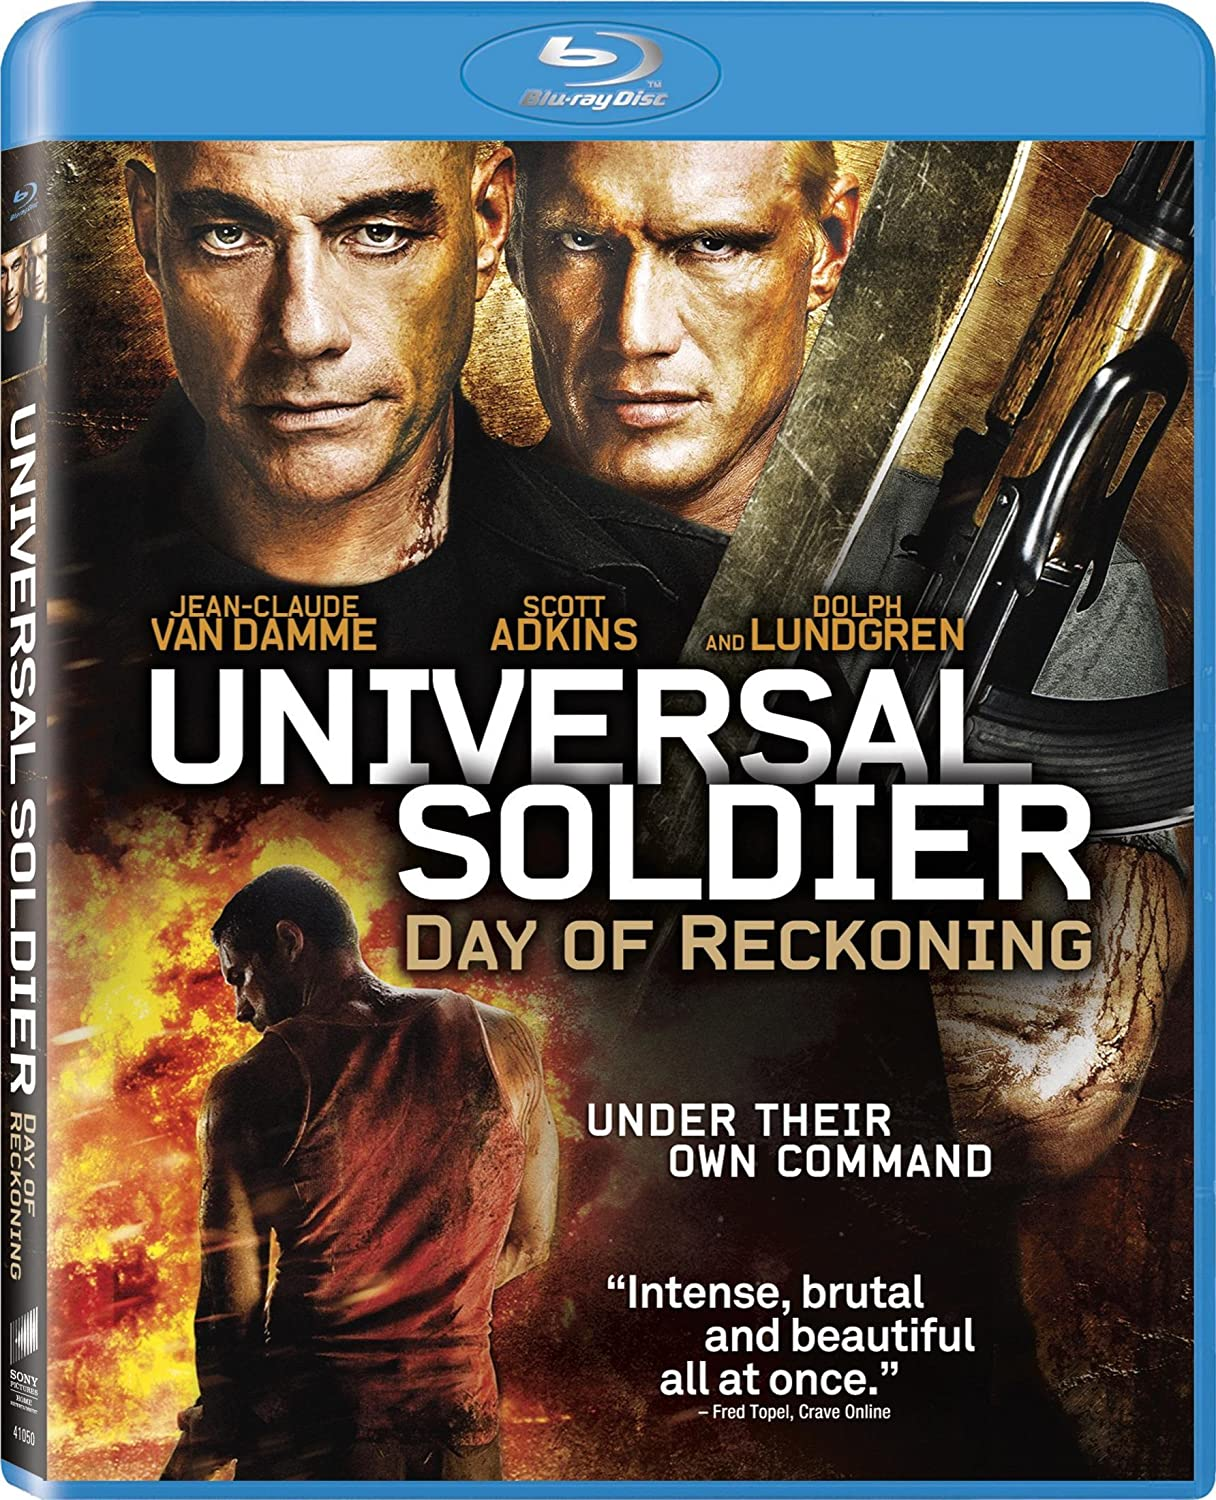 Image result for universal soldier day of reckoning 2012 poster